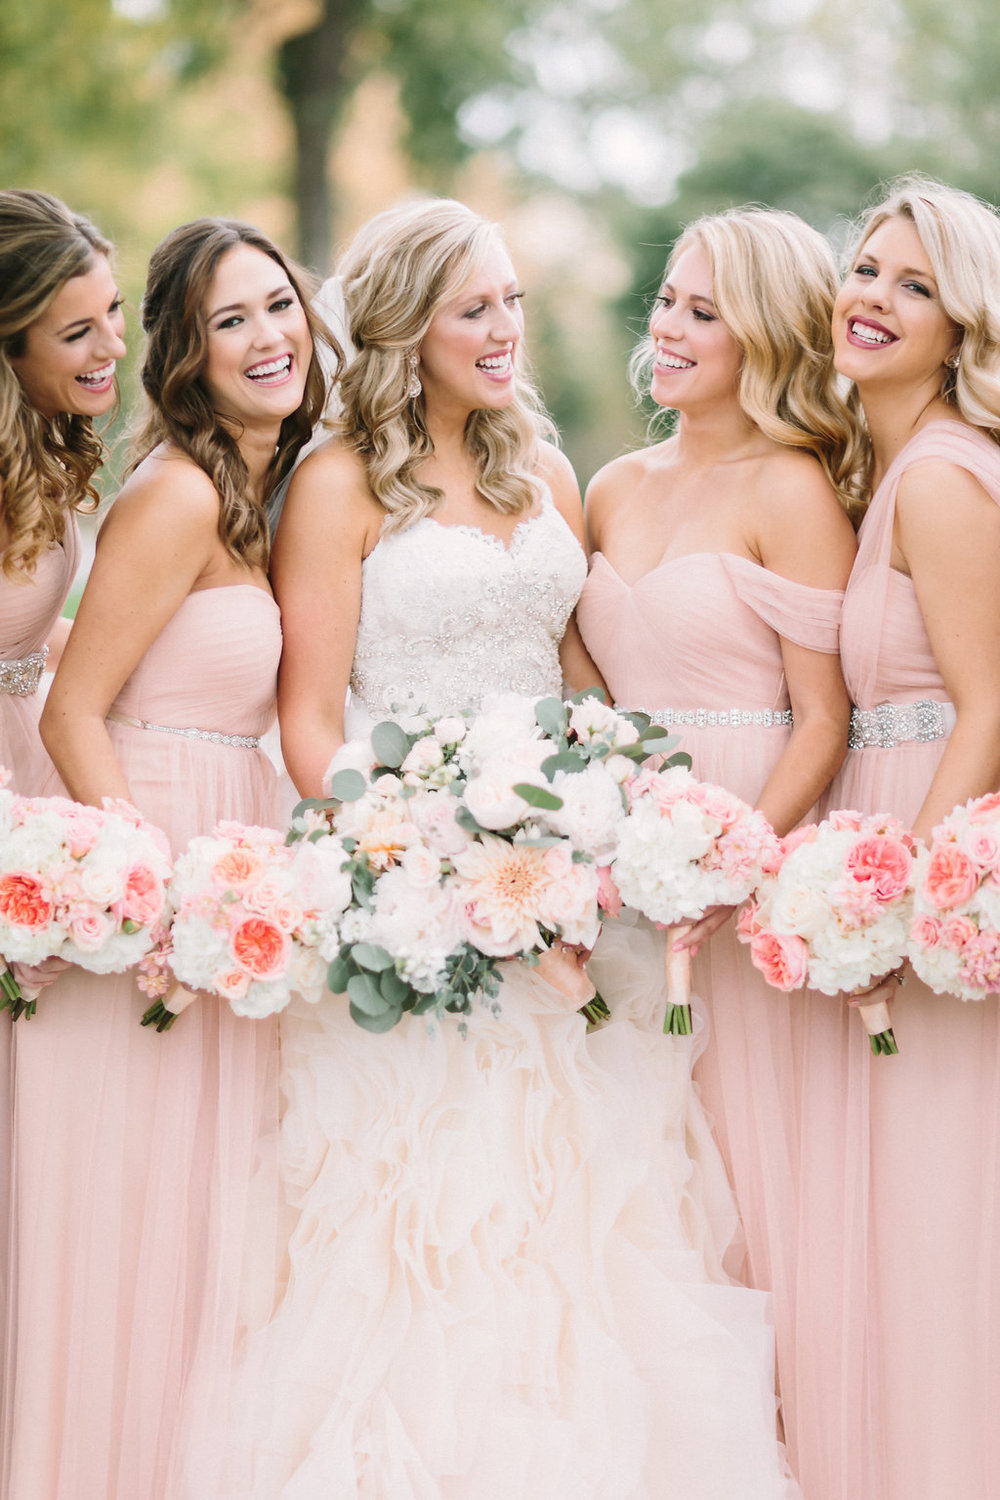 Photography: Jessica Blex Photography & Design